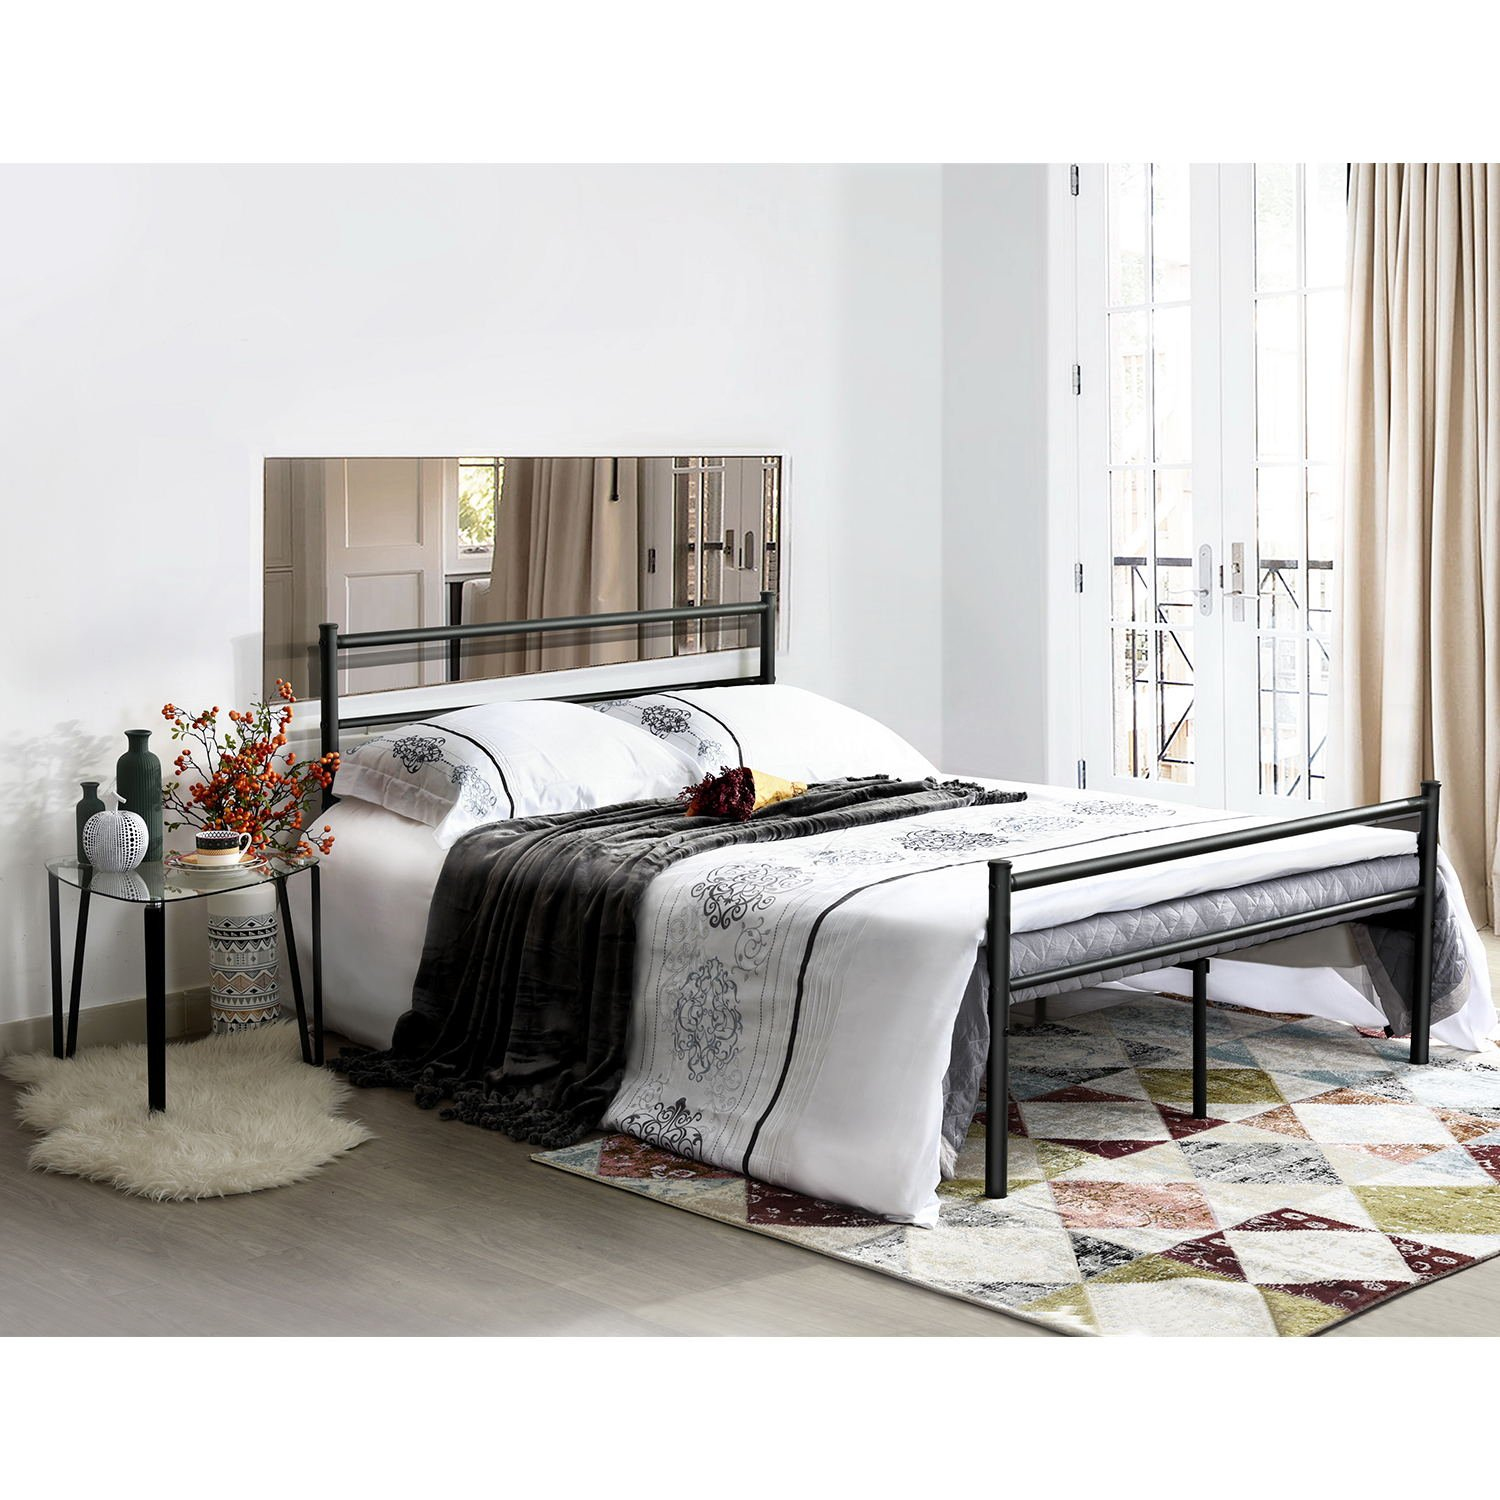 Aingoo Metal Double Bed Frame Durable And Large Db018 Black